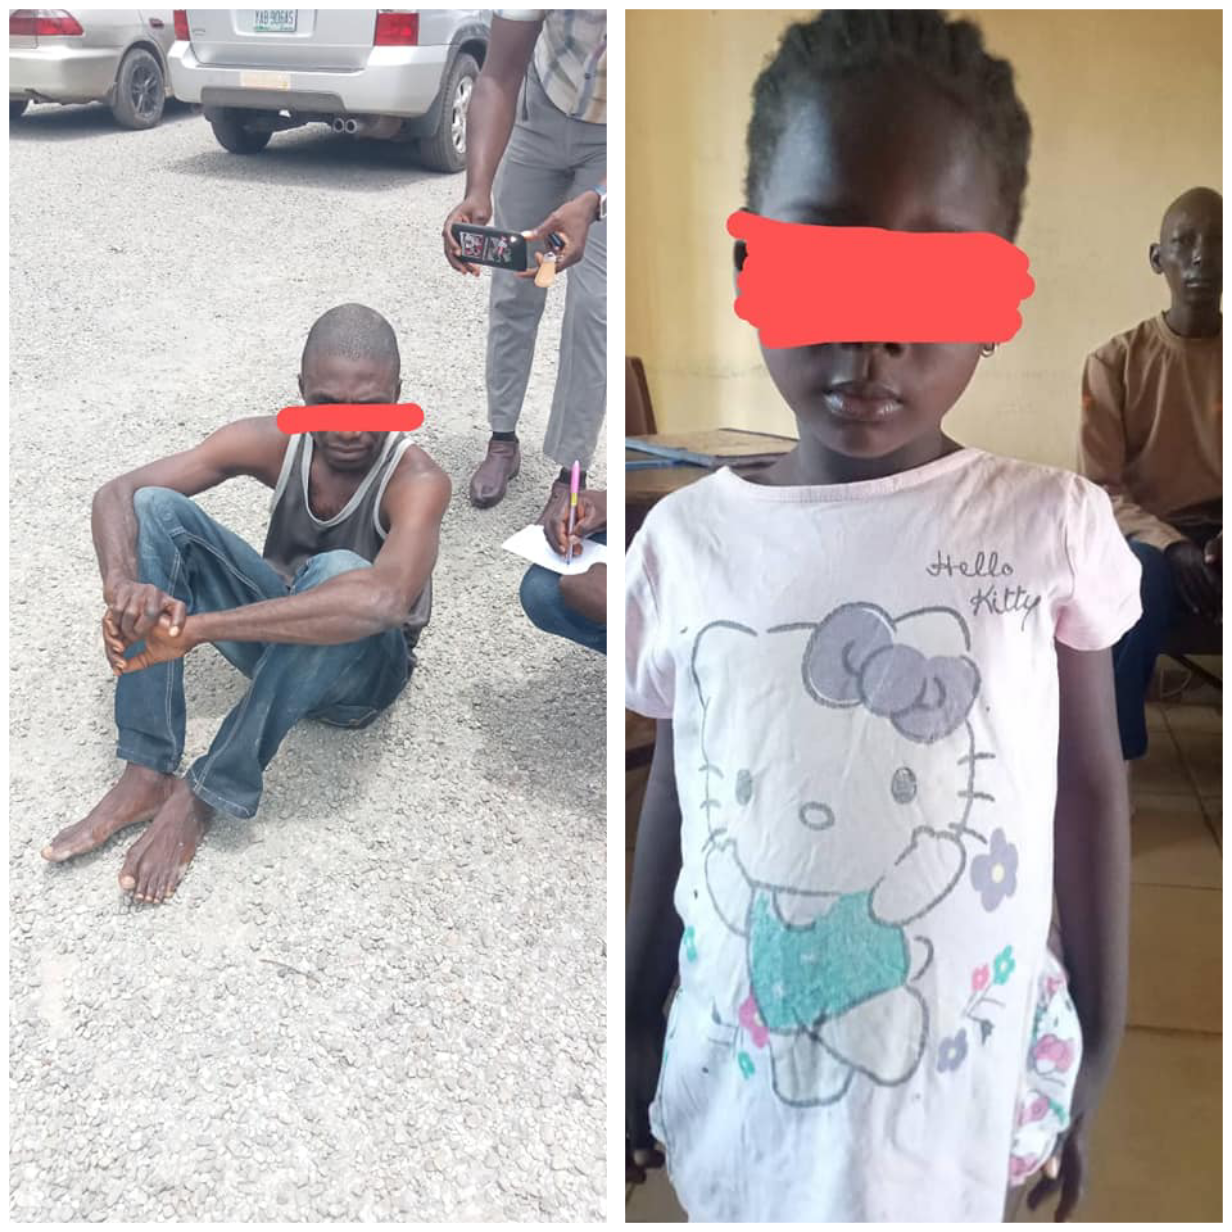 NSCDC arrests man for allegedly defiling 4-year-old girl in Nasarawa